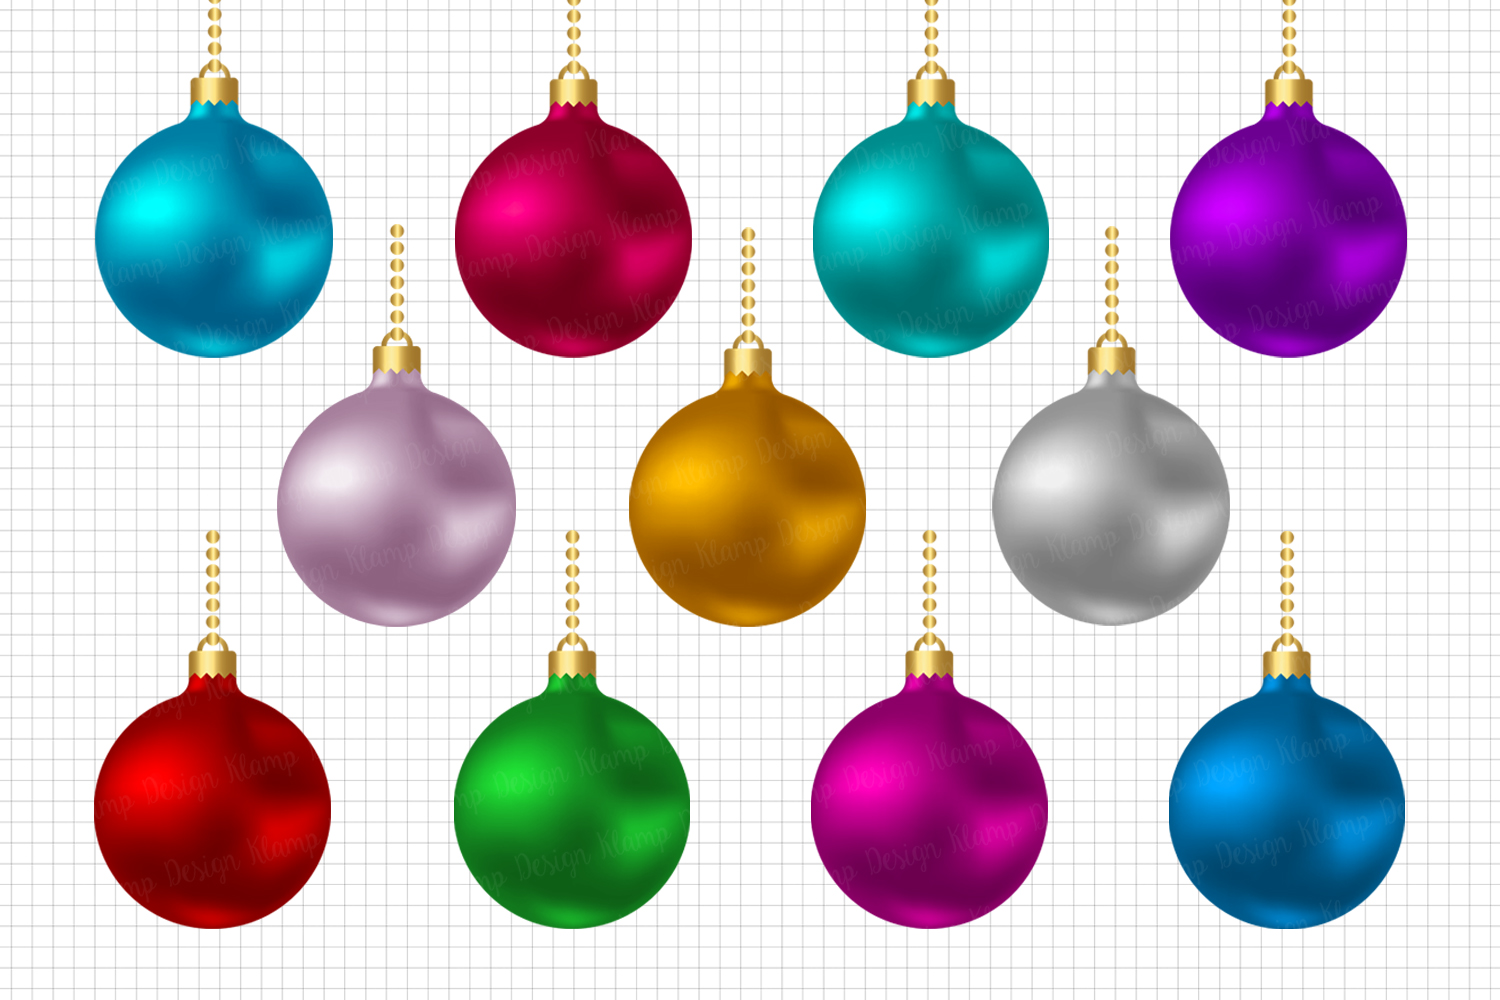 Christmas Balls Clipart, Christmas Graphic and Illustrations, Scrapbooking, Card Making, Decorations example image 1